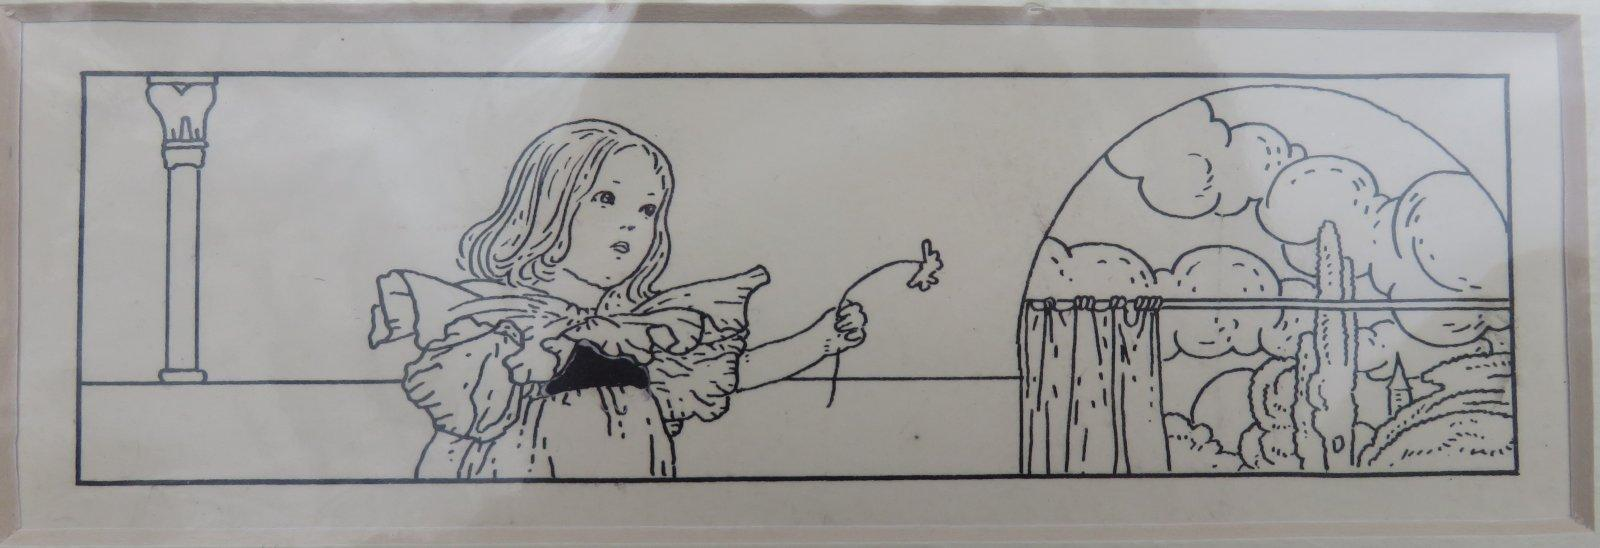 "ORIGINAL PEN AND INK DRAWING OF A LITTLE GIRL FROM """"SONGS OF LOVE AND PRAISE"""". (Artwork). ROBINSON, Charles."